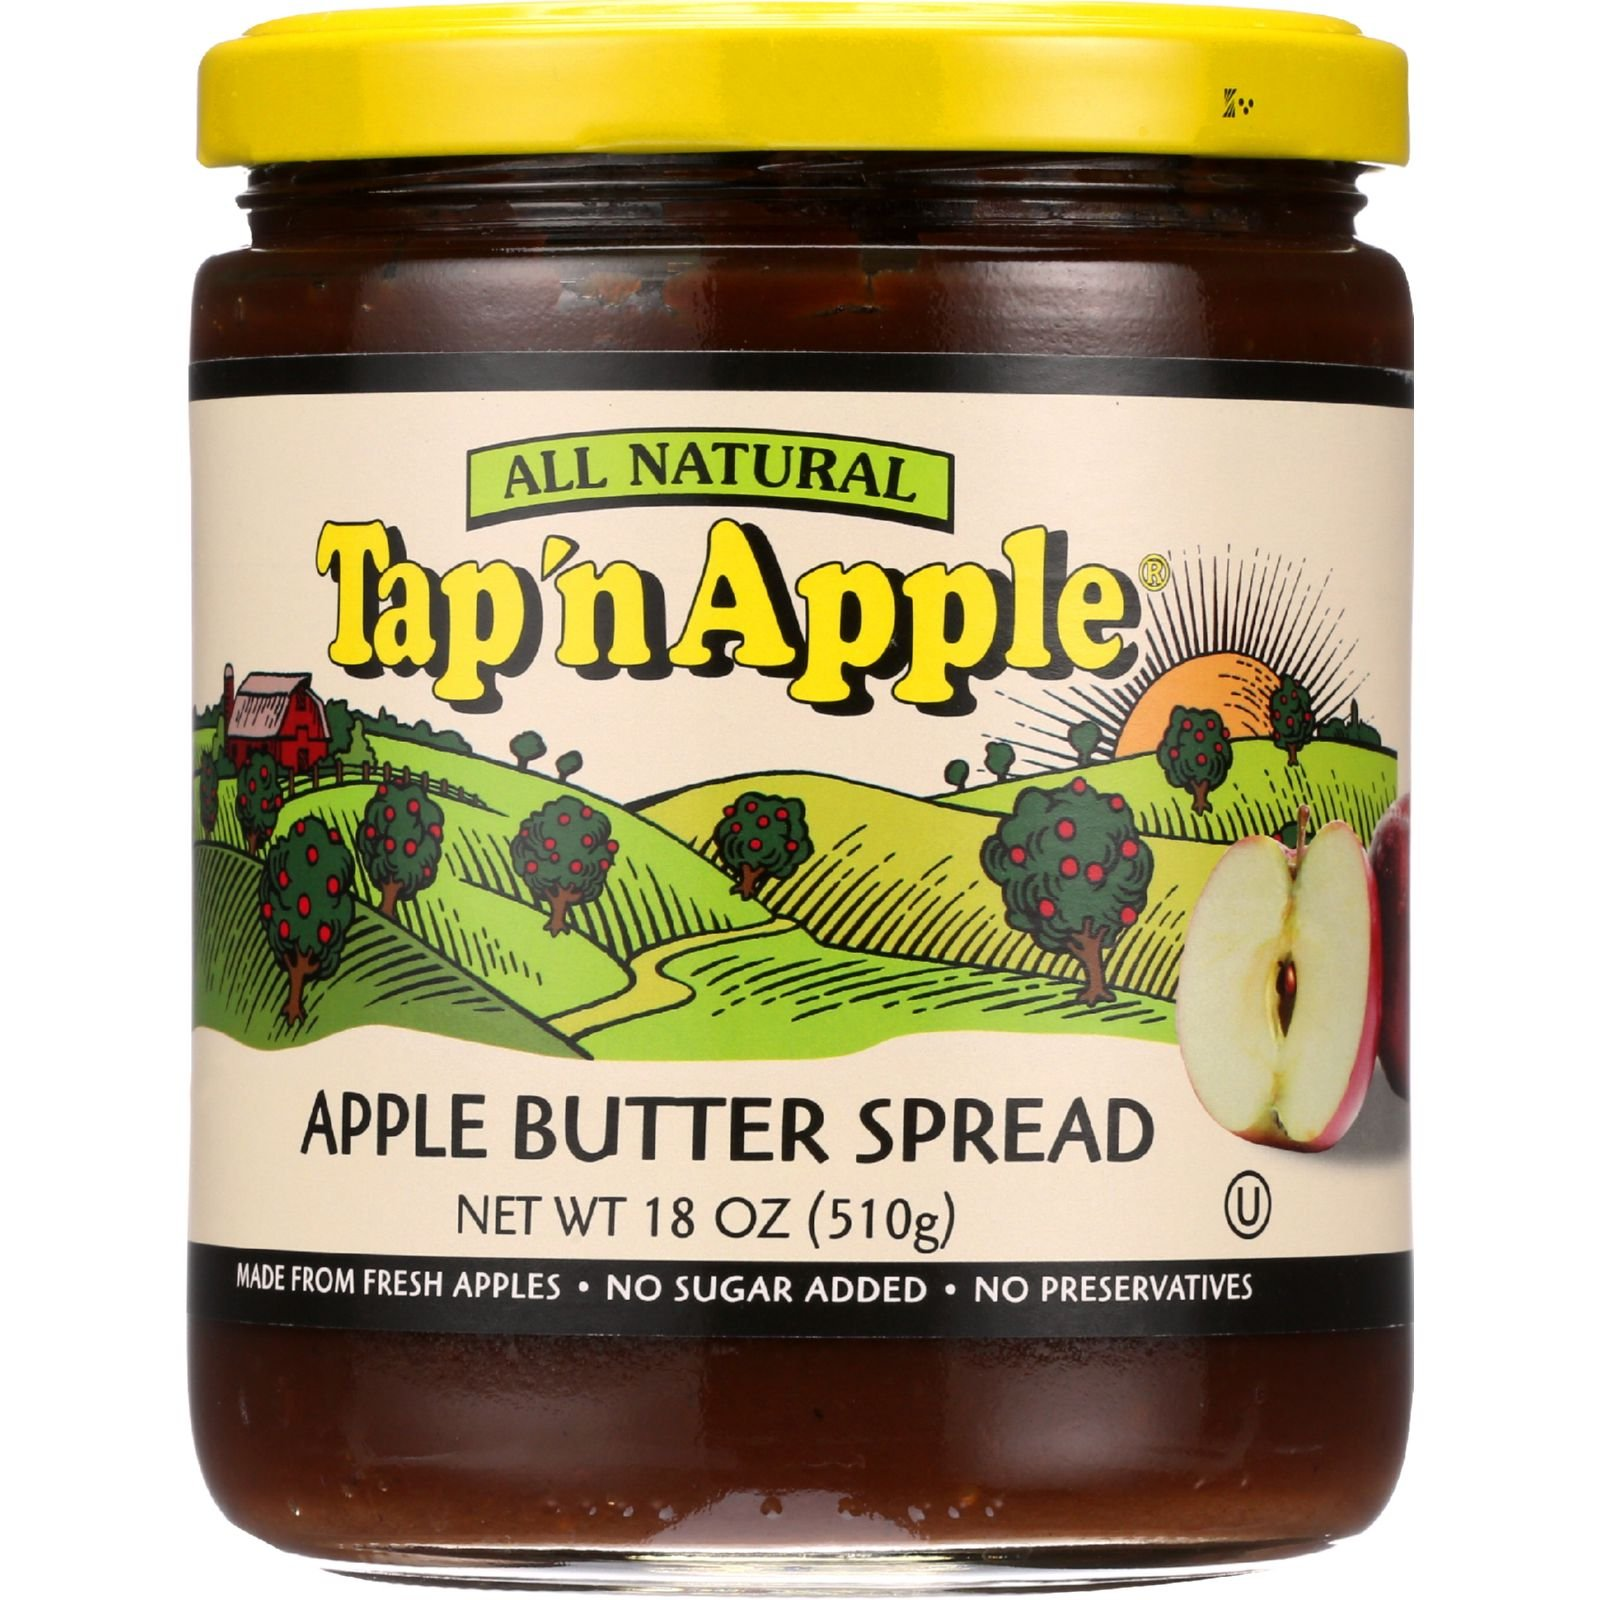 TapN Apple - Apple Butter - 18 oz - case of 12 - All Natural - Made from Fresh Apples